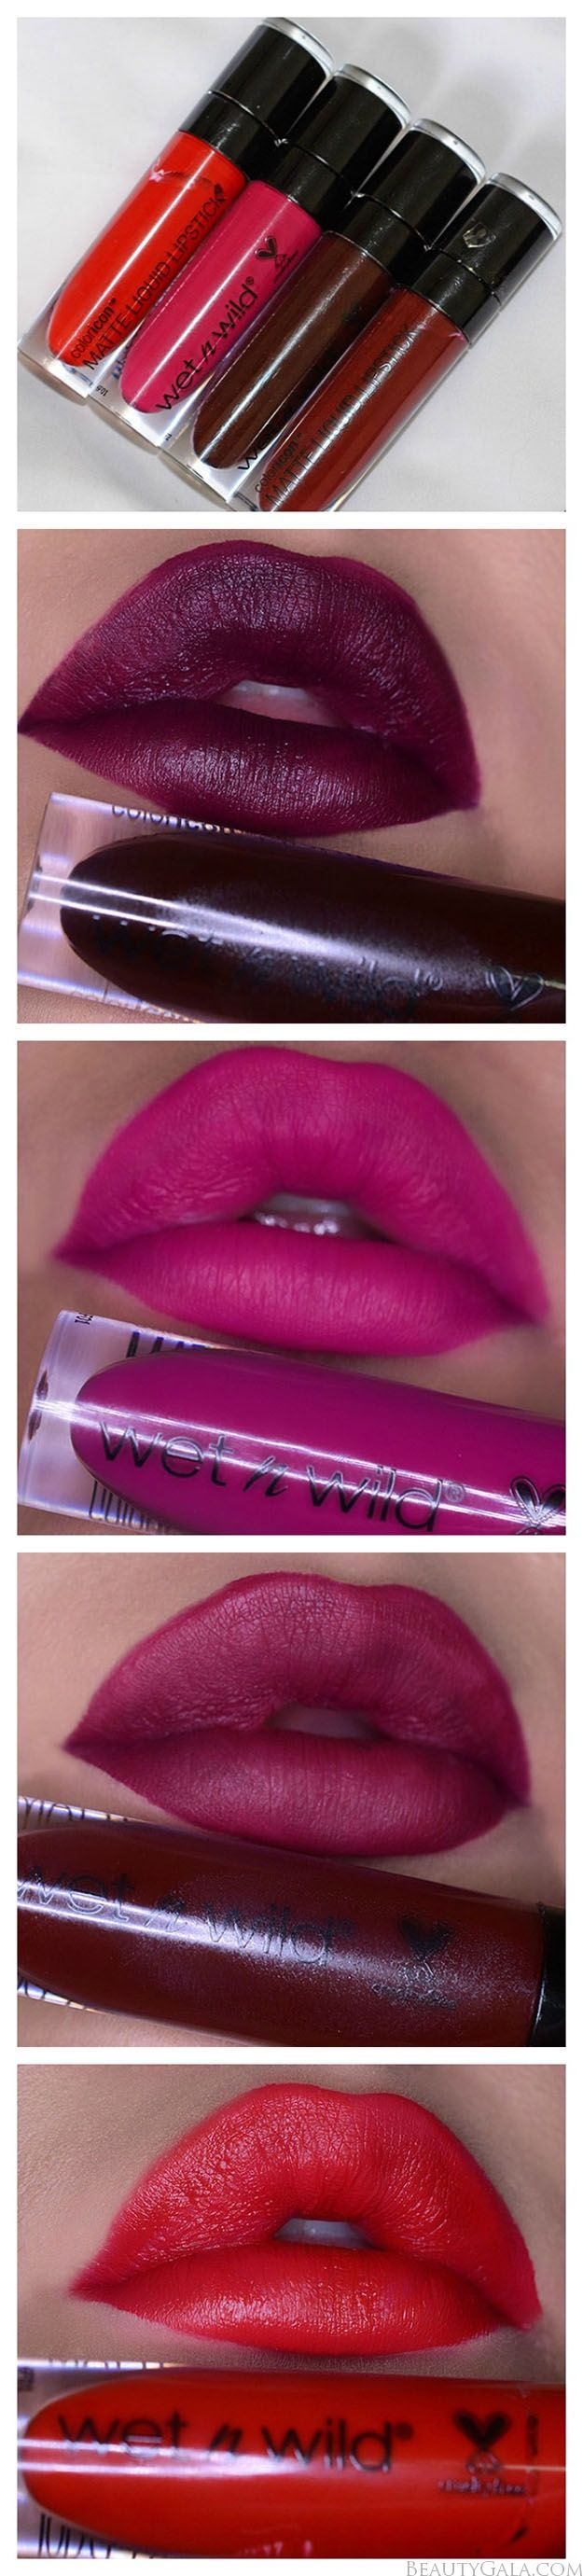 Autumn Lush // Wet n Wild Fall 2016 Matte Liquid Lipstick Swatches and Review